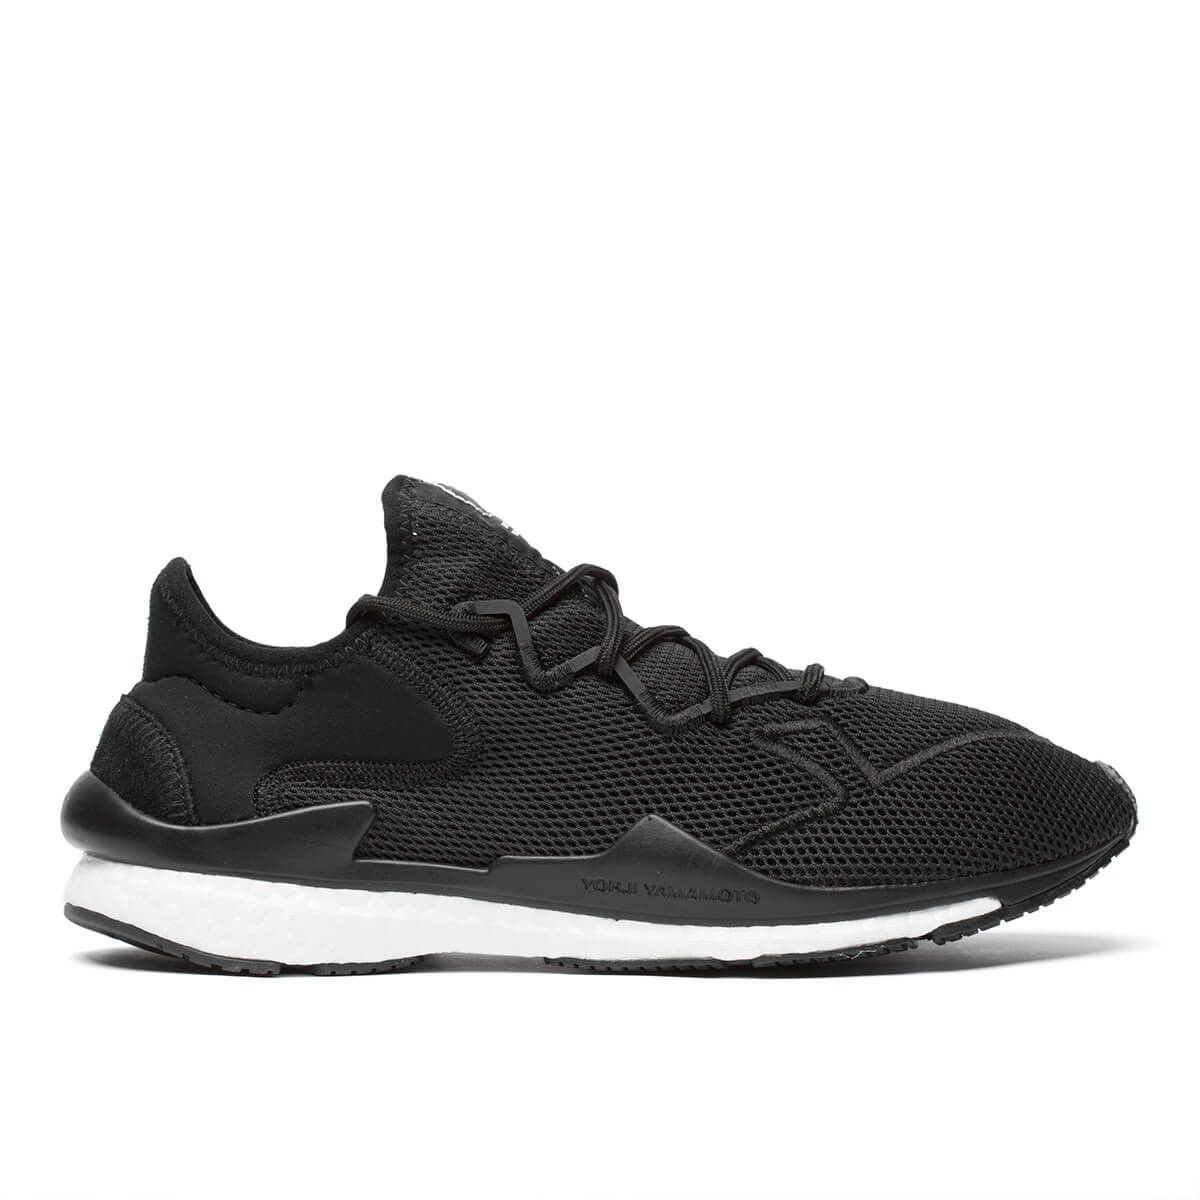 efb55d5b3d1a7 Adizero Runner sneakers from the Pre-Fall 2018 Y-3 by Yohji Yamamoto  collection in black